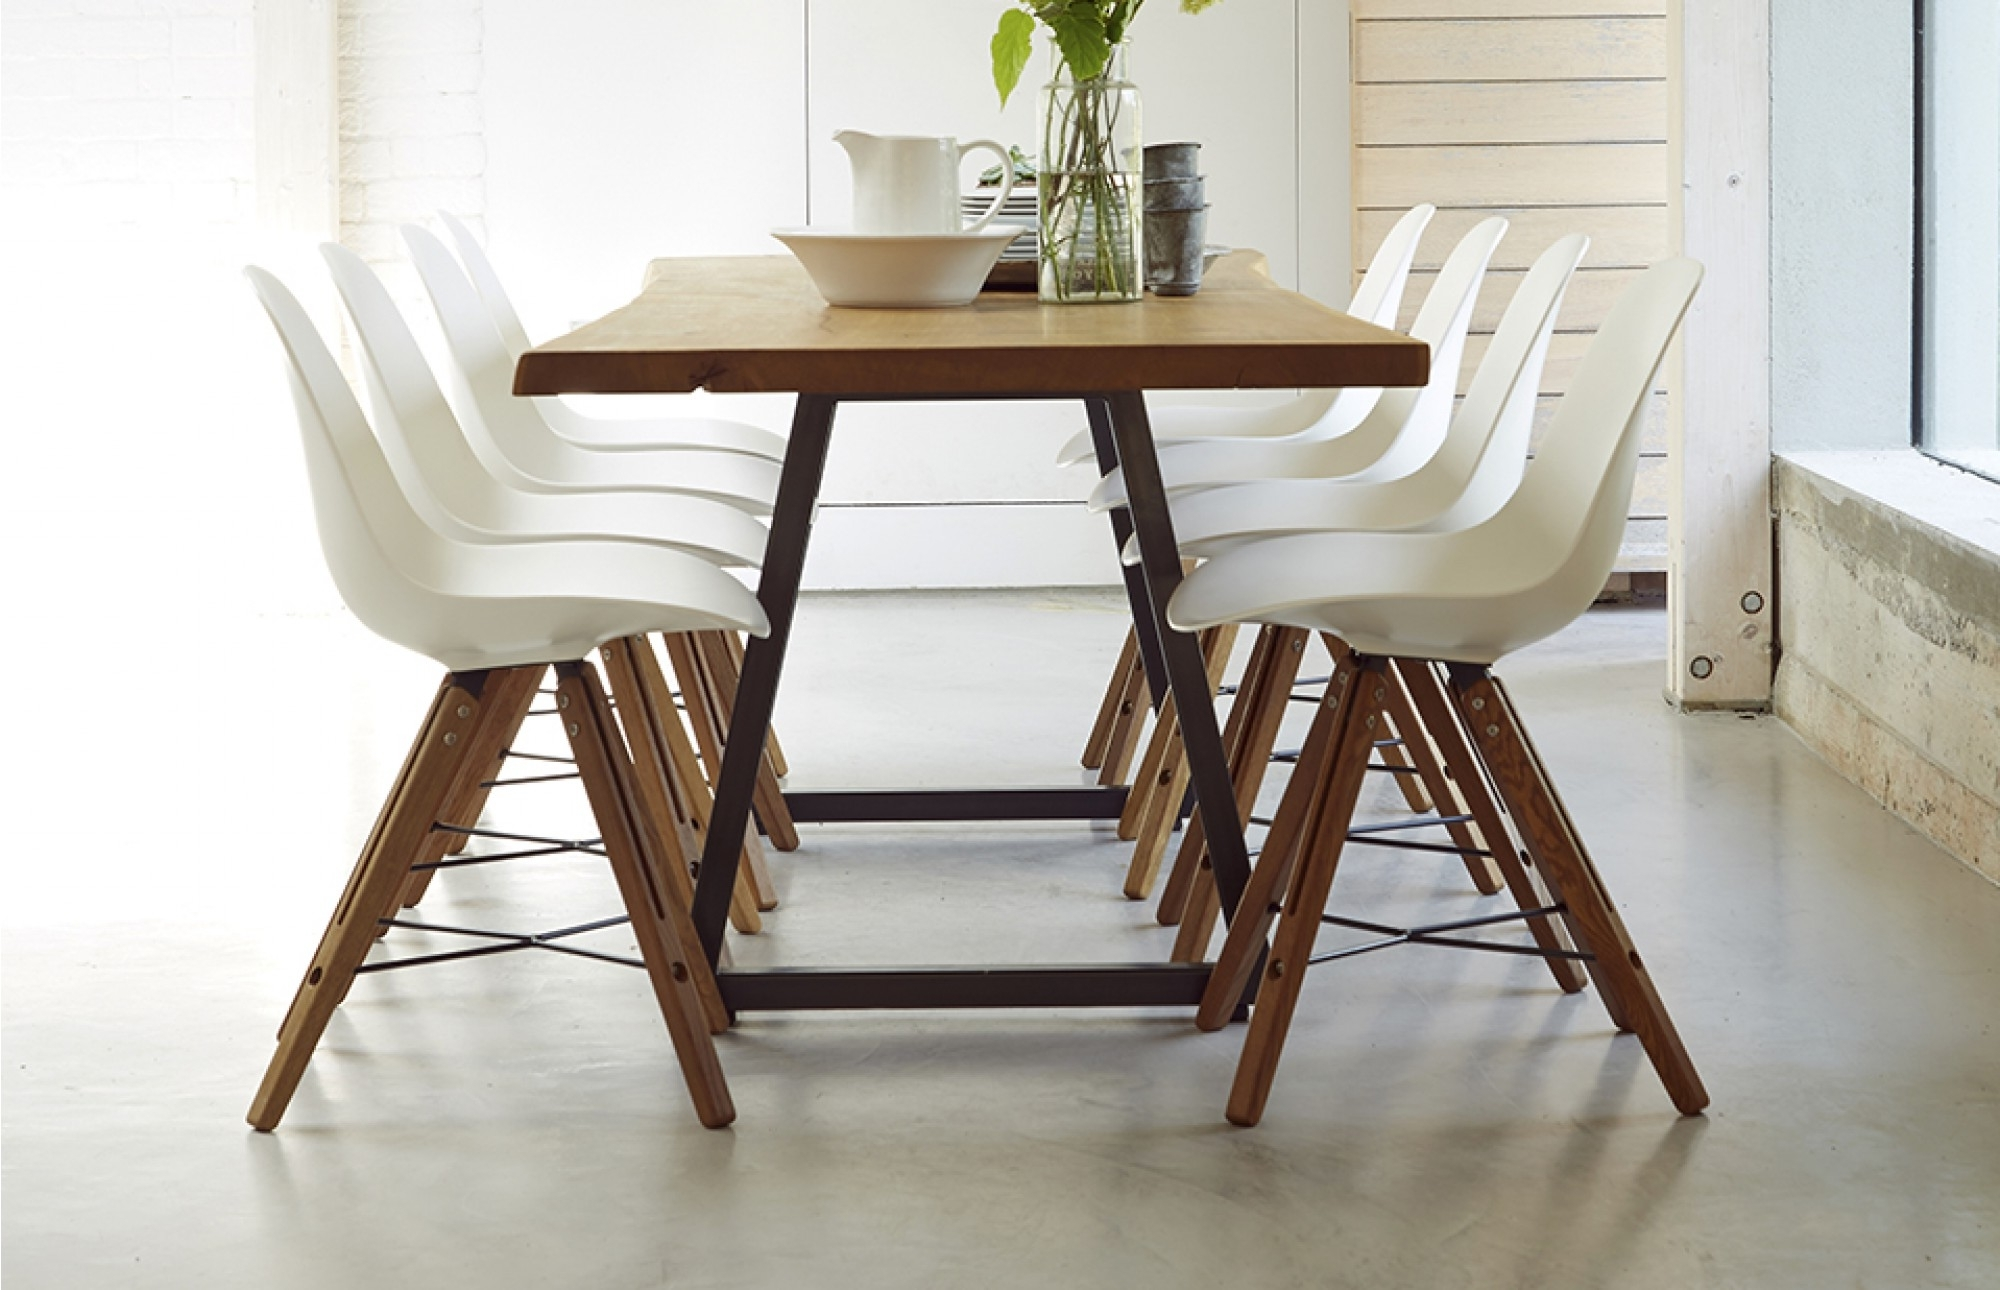 Swani Furniture In Popular Cheap 8 Seater Dining Tables (View 23 of 25)